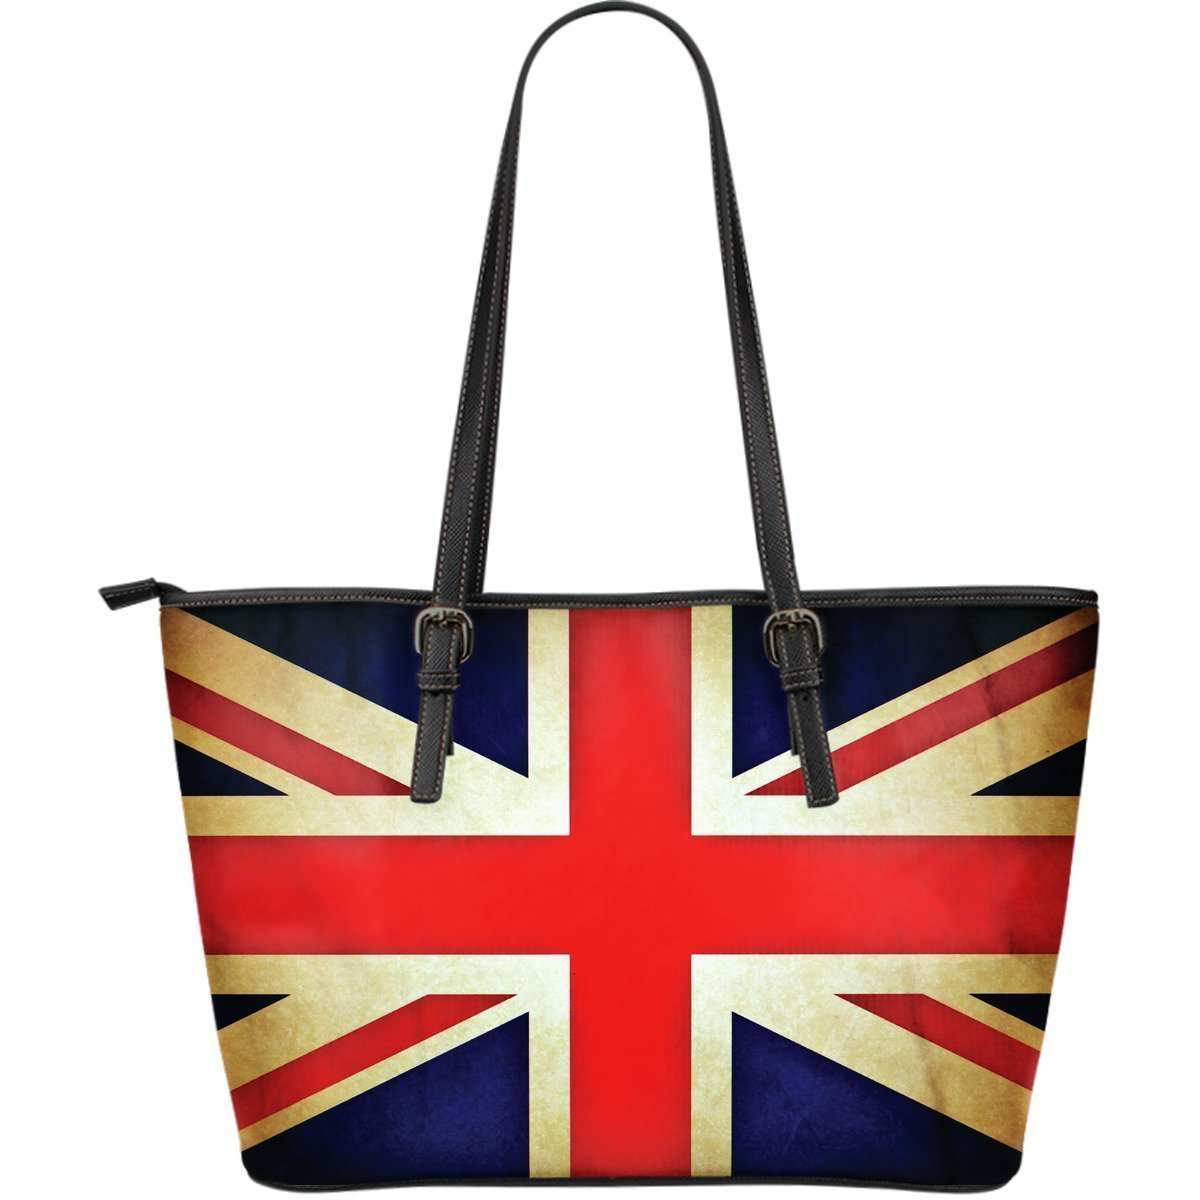 Bright Union Jack British Flag Print Leather Tote Bag GearFrost